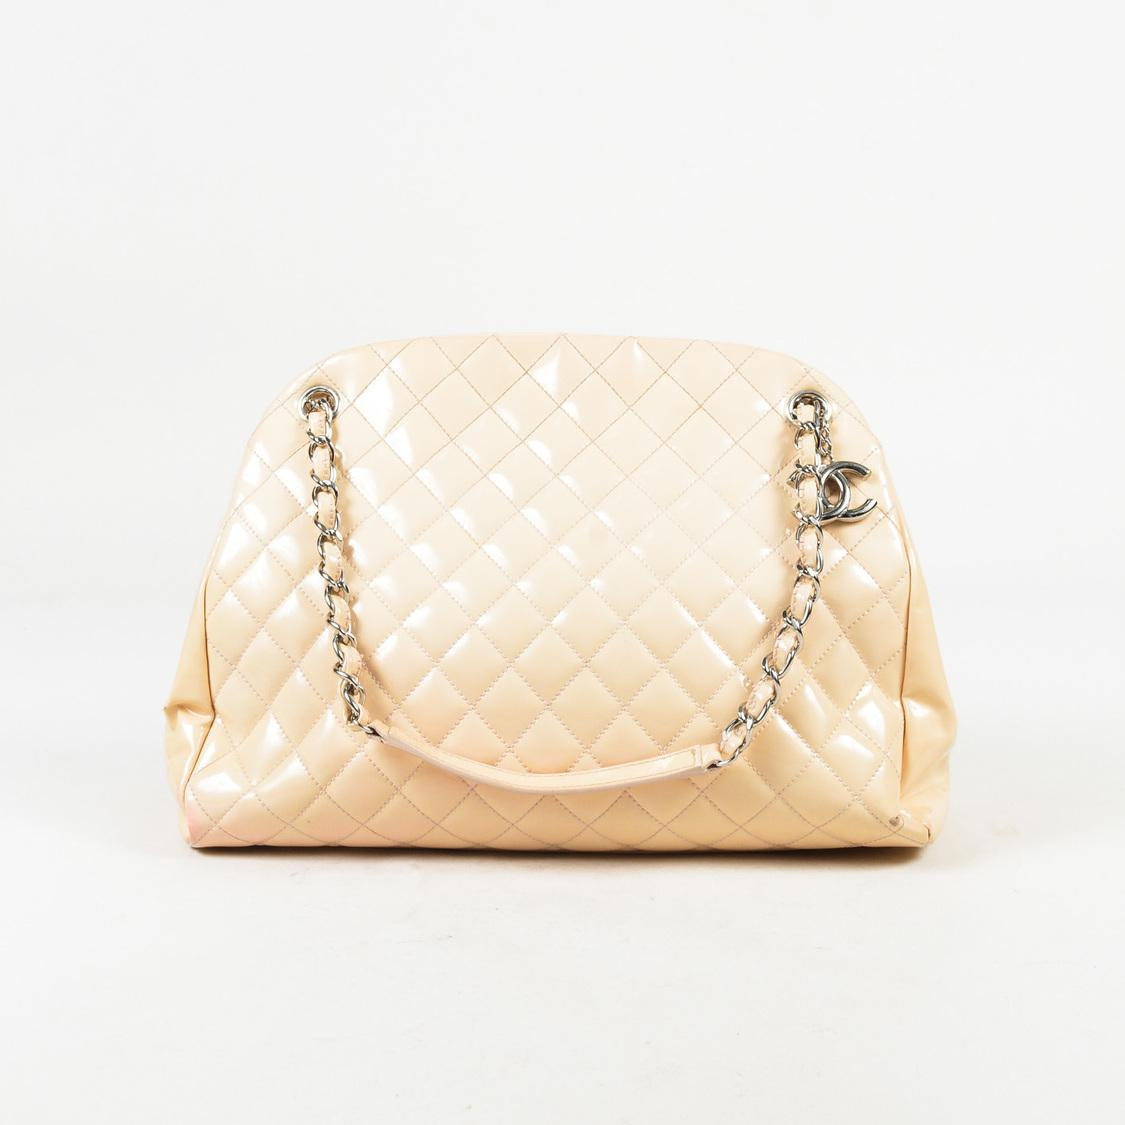 4f145afc82a3 Lyst - Chanel Cream Patent Leather Quilted Chain Handle Large